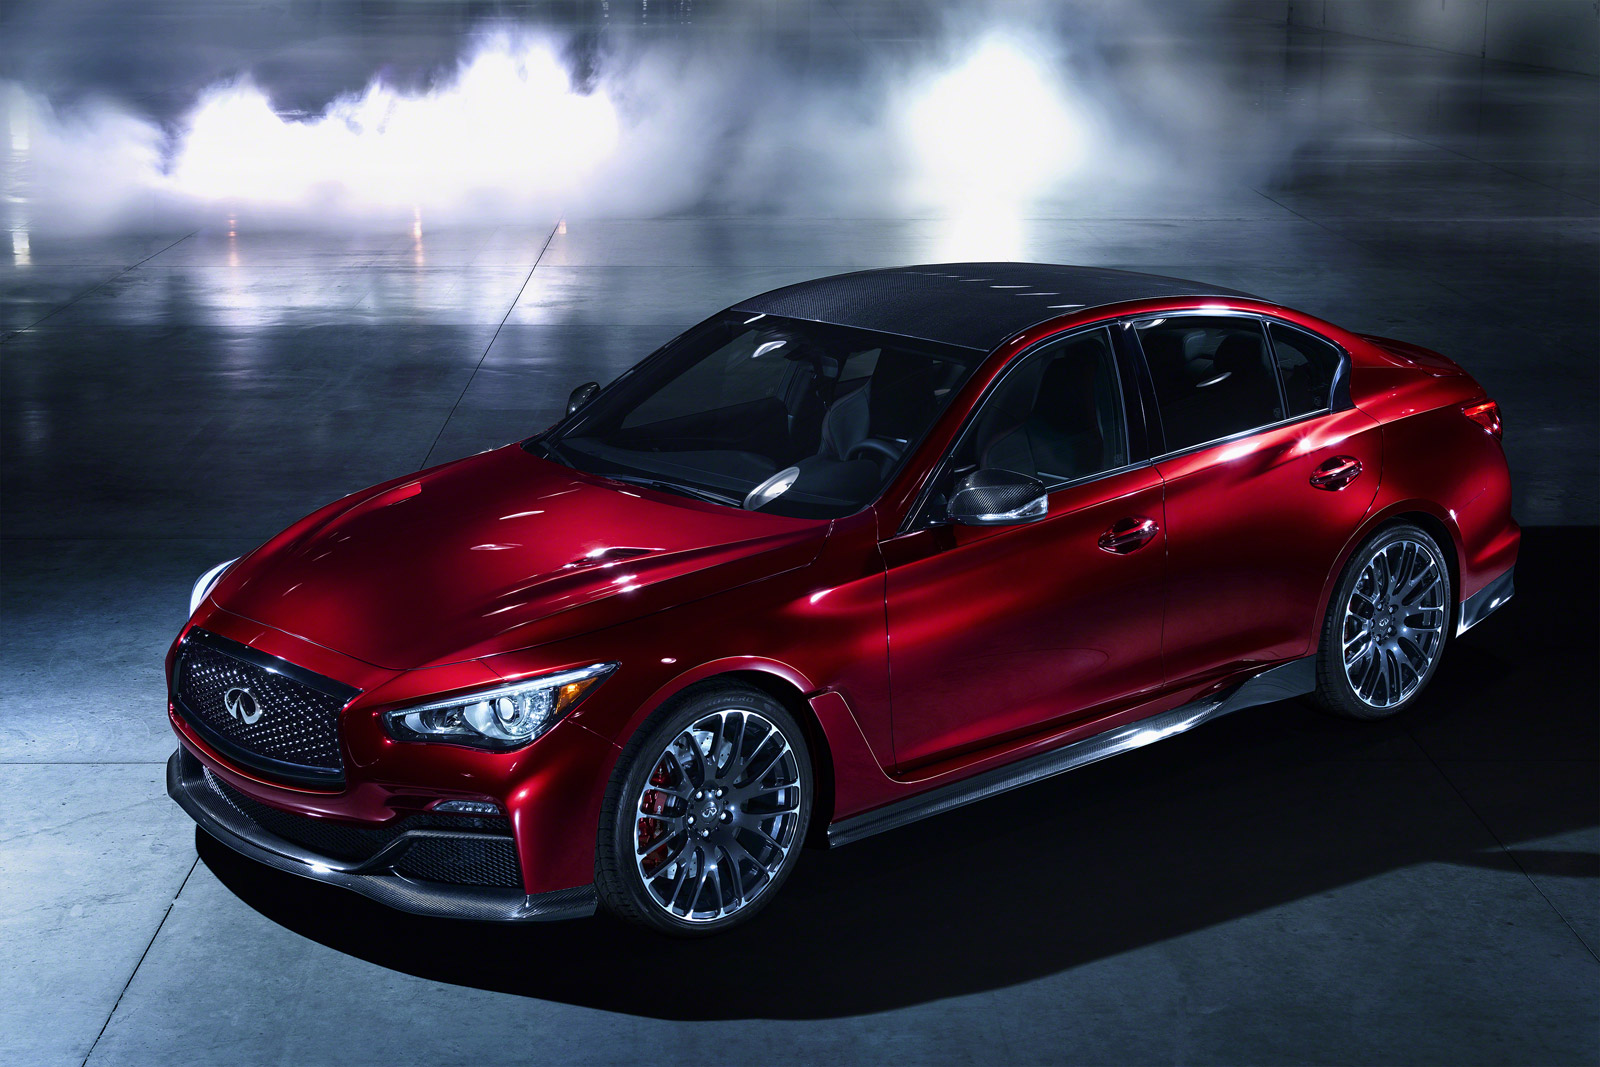 97 All New 2020 Infiniti Q50 Coupe Eau Rouge New Model and Performance